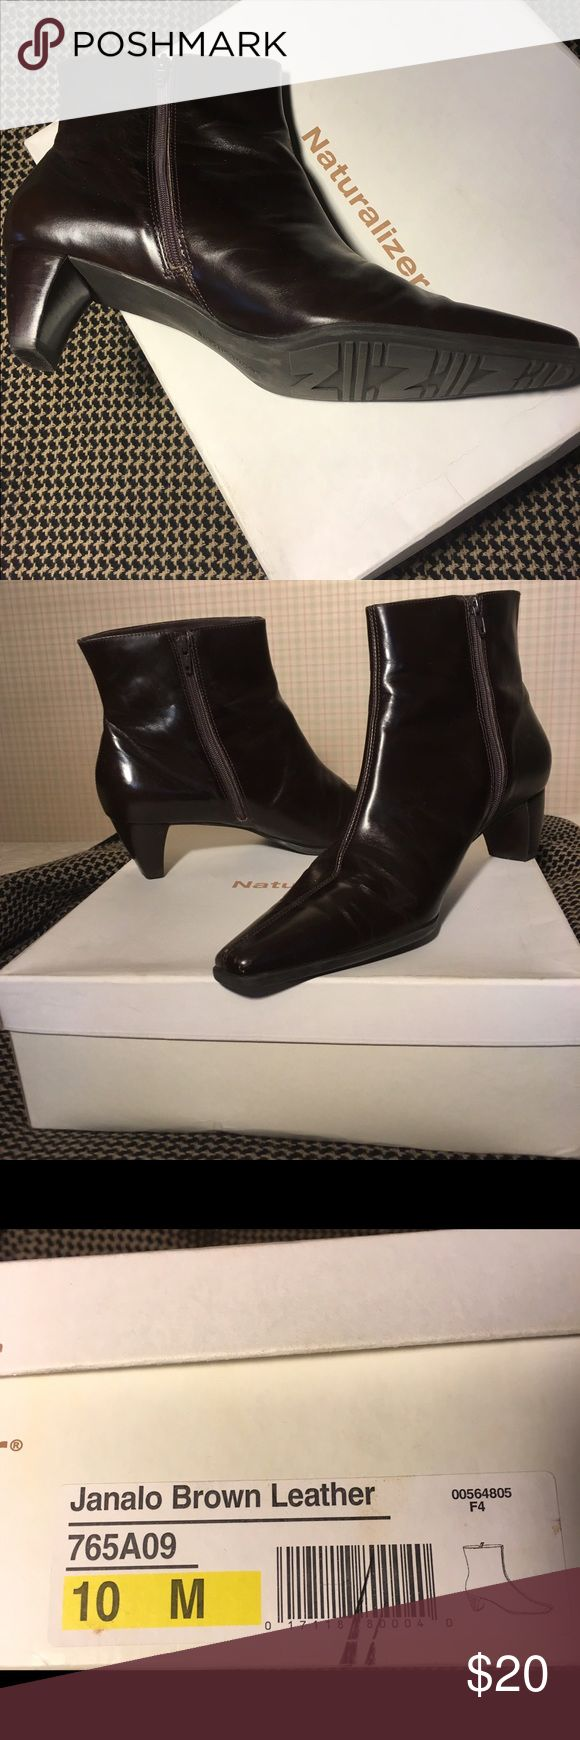 Naturalizer brown leather ankle boots Naturalizer brown leather side-zippered boots. Thin heels. Naturalizer Shoes Ankle Boots & Booties